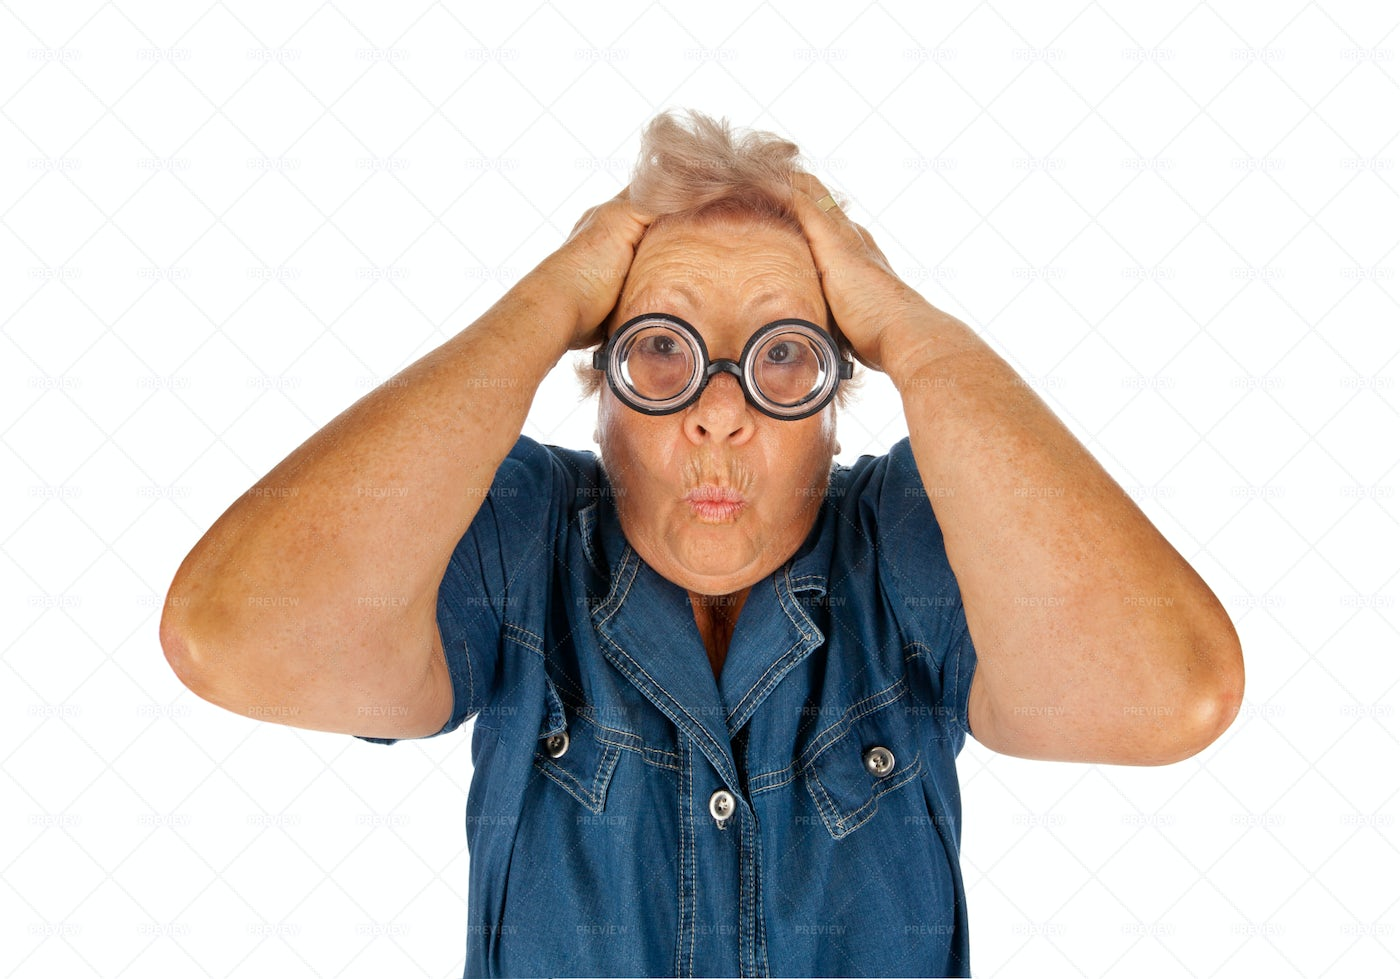 Elderly Woman With Funny Glasses: Stock Photos